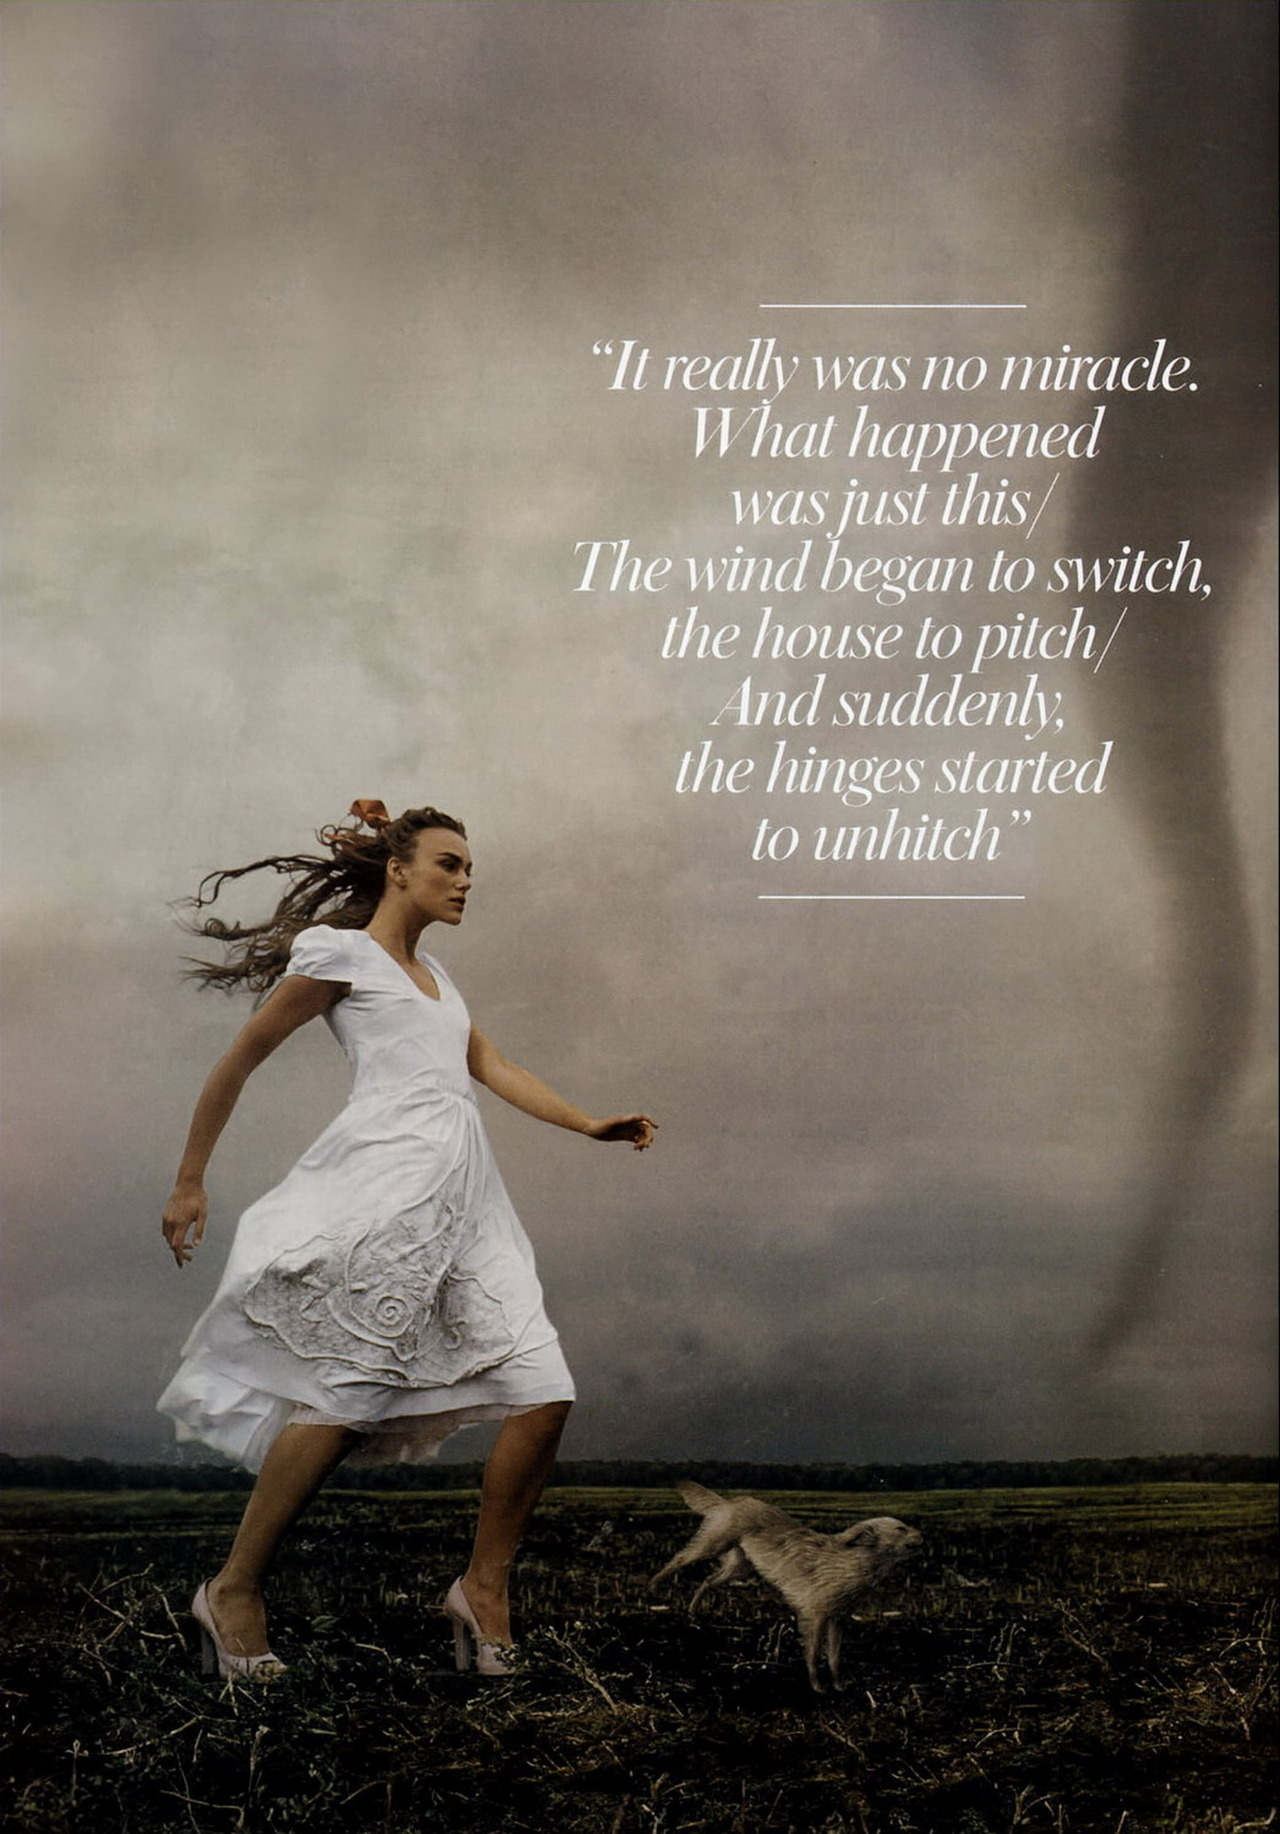 Keira Knightley - Vogue by Annie Leibovitz, December 2005 Just then the witch to satisfy an itch came riding on her broomstick thumbin' for a hitch!